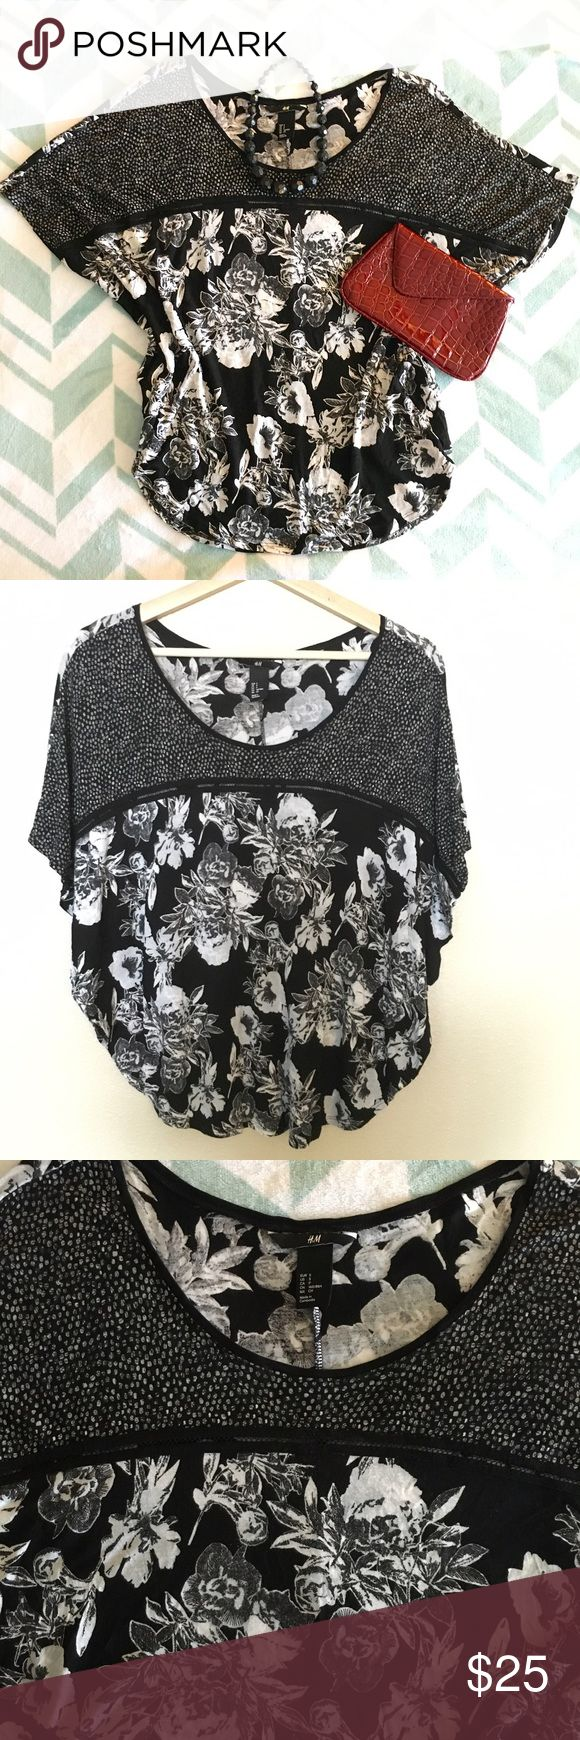 H&M | Black & White Floral Batwing Top S Cute black & white batwing floral top. In excellent condition, just too small for me. H&M Tops